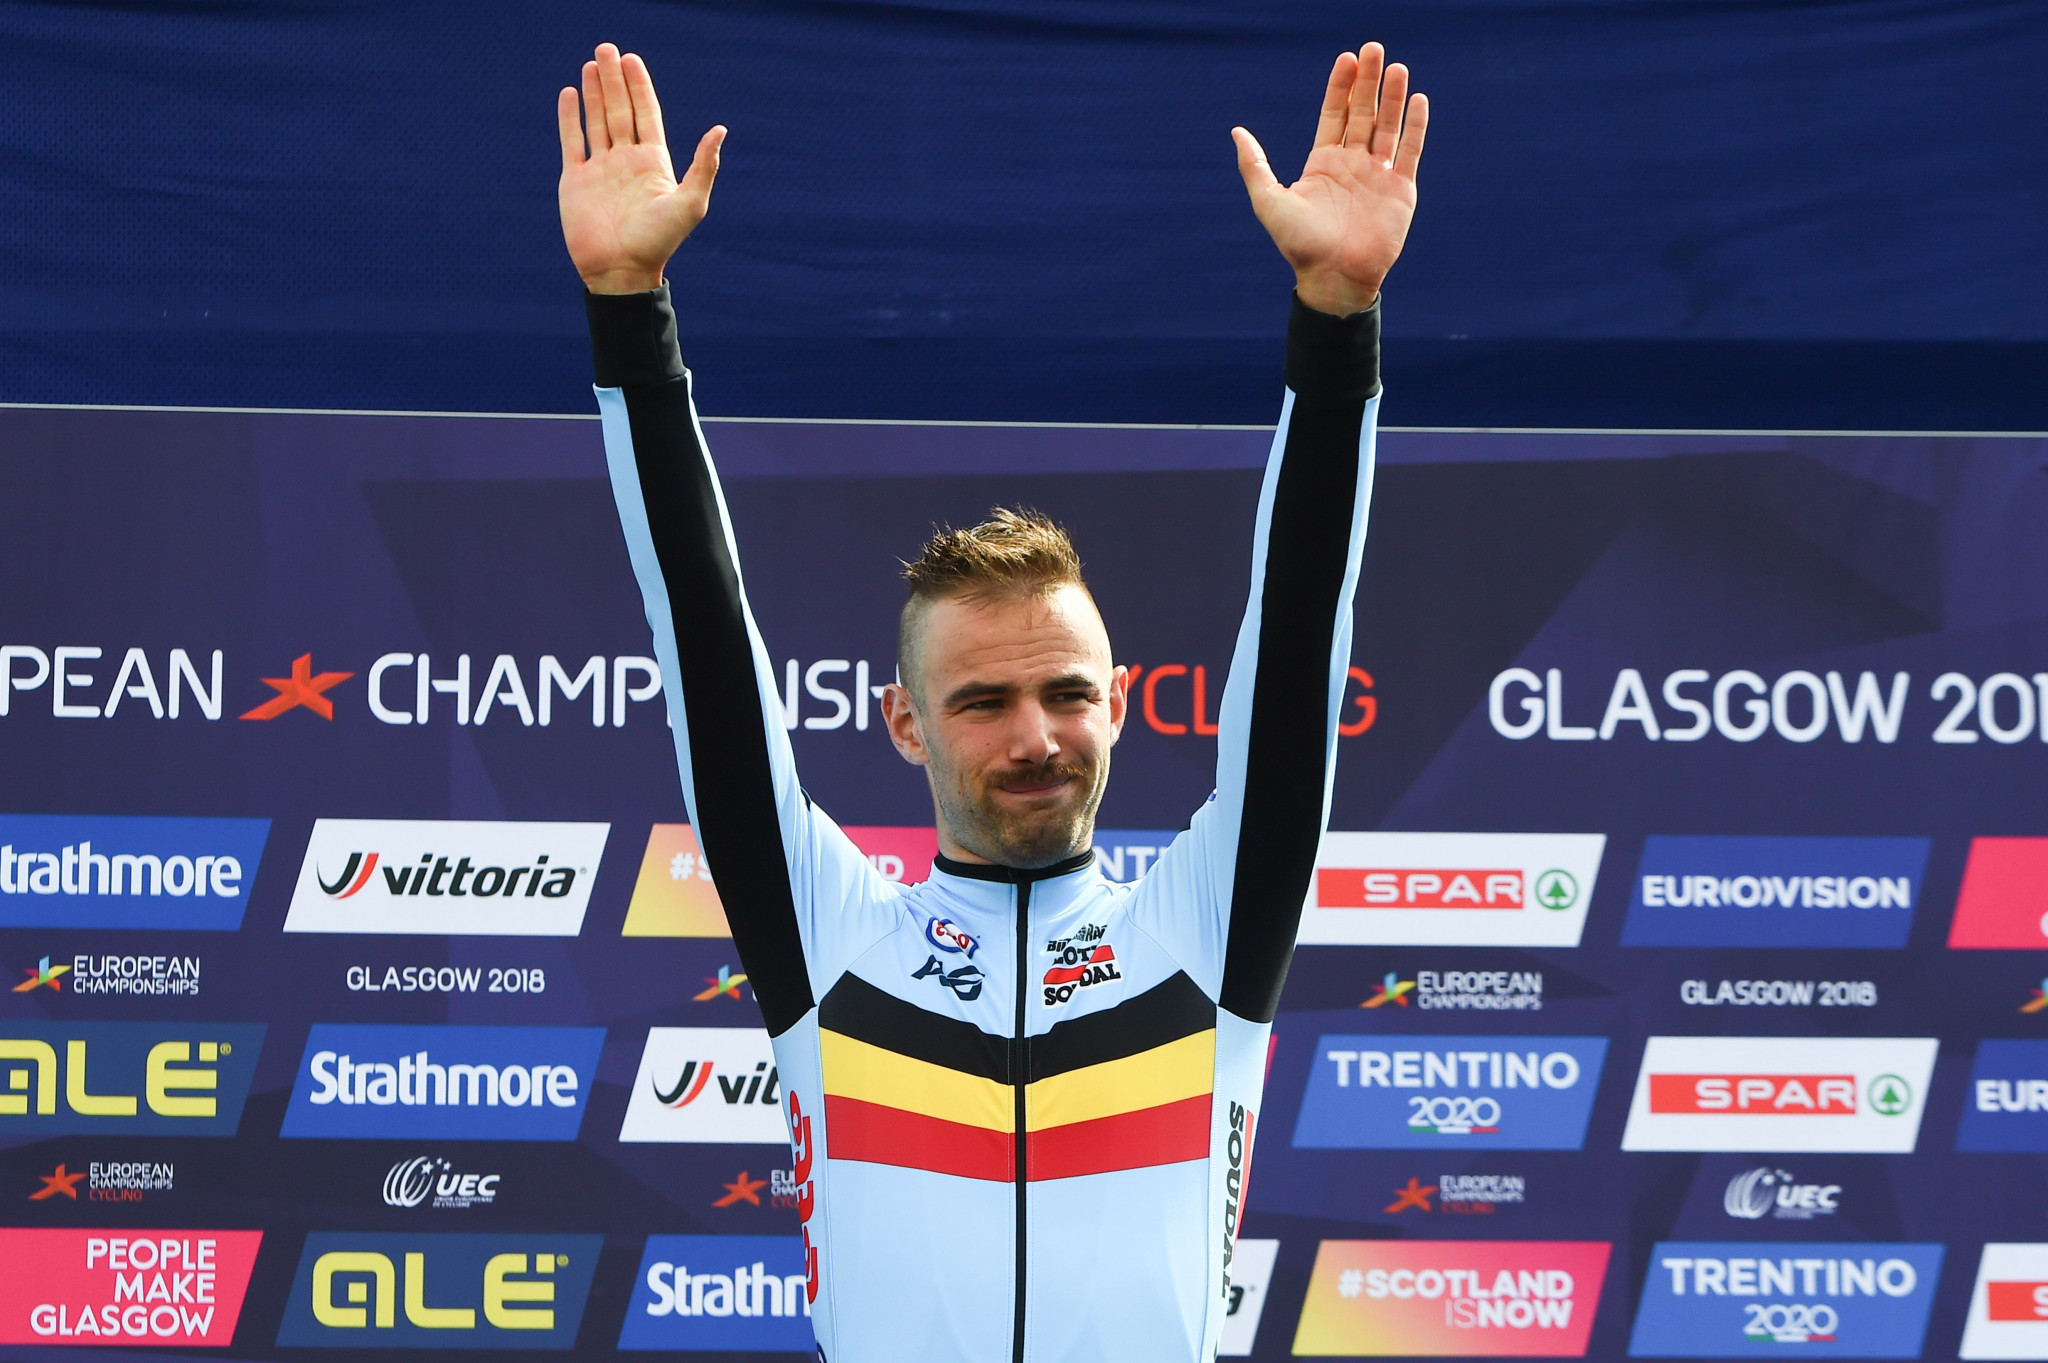 Victor Campenaerts won the men's time trial competition by less than one second ©Getty Images